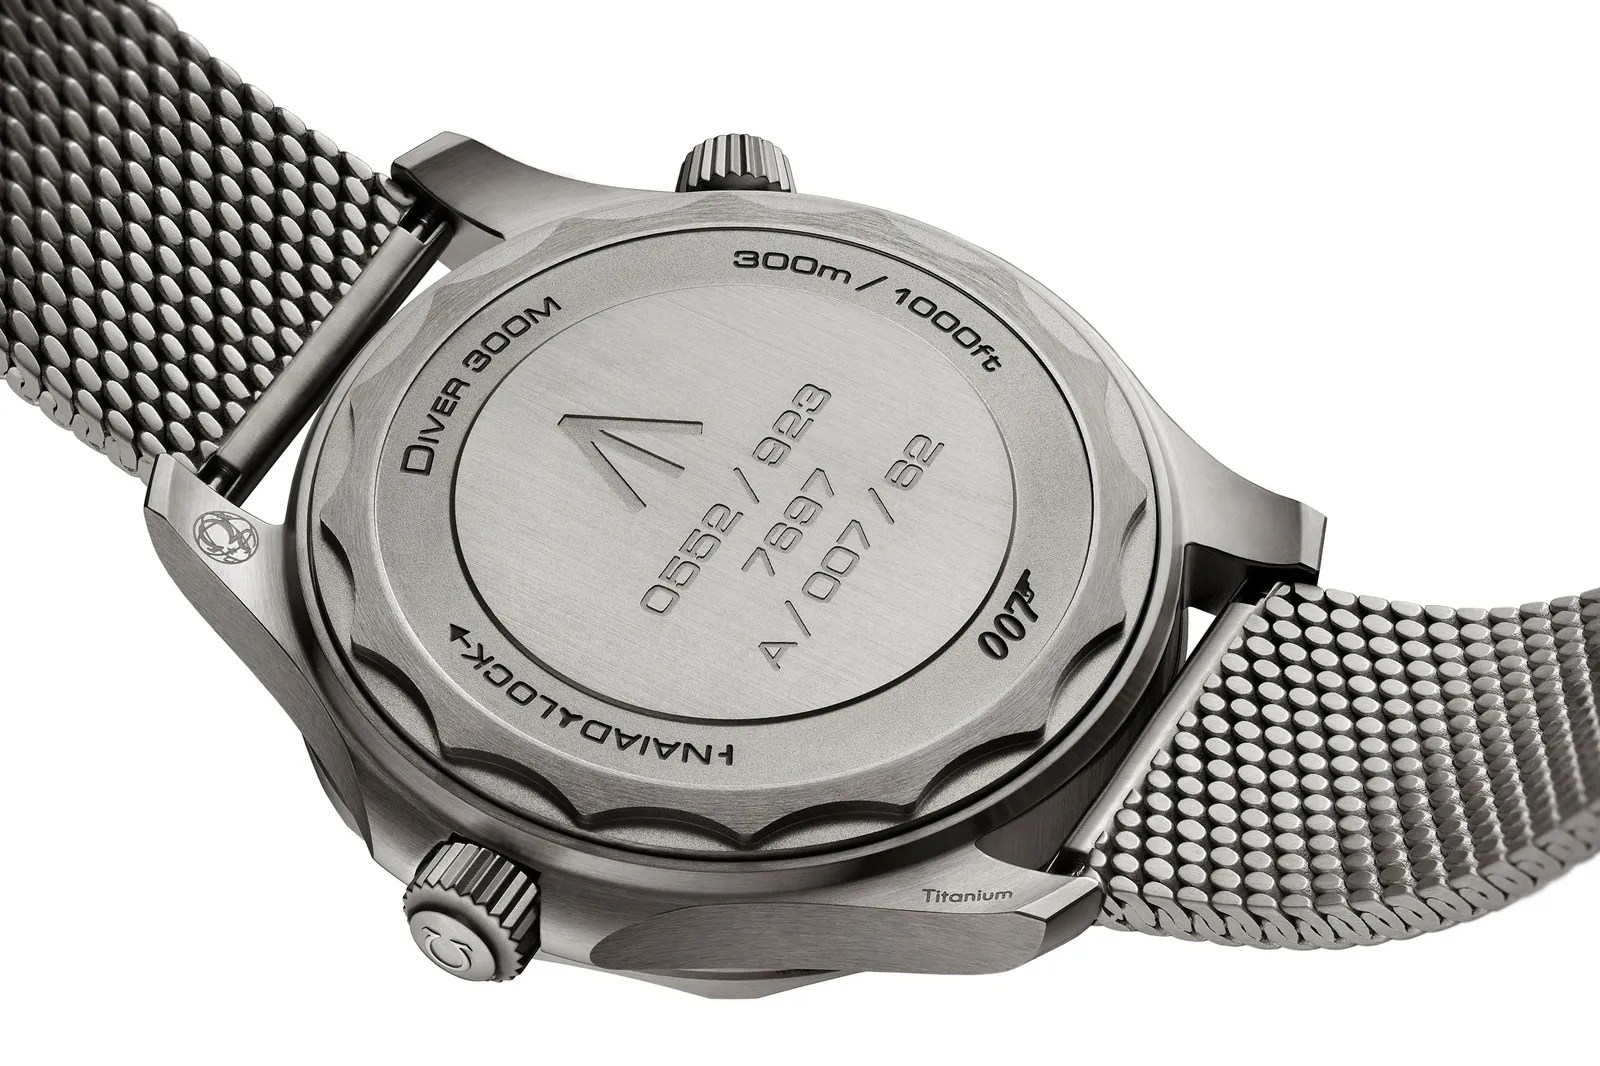 the back side of a silver omega wrist watch on a white background